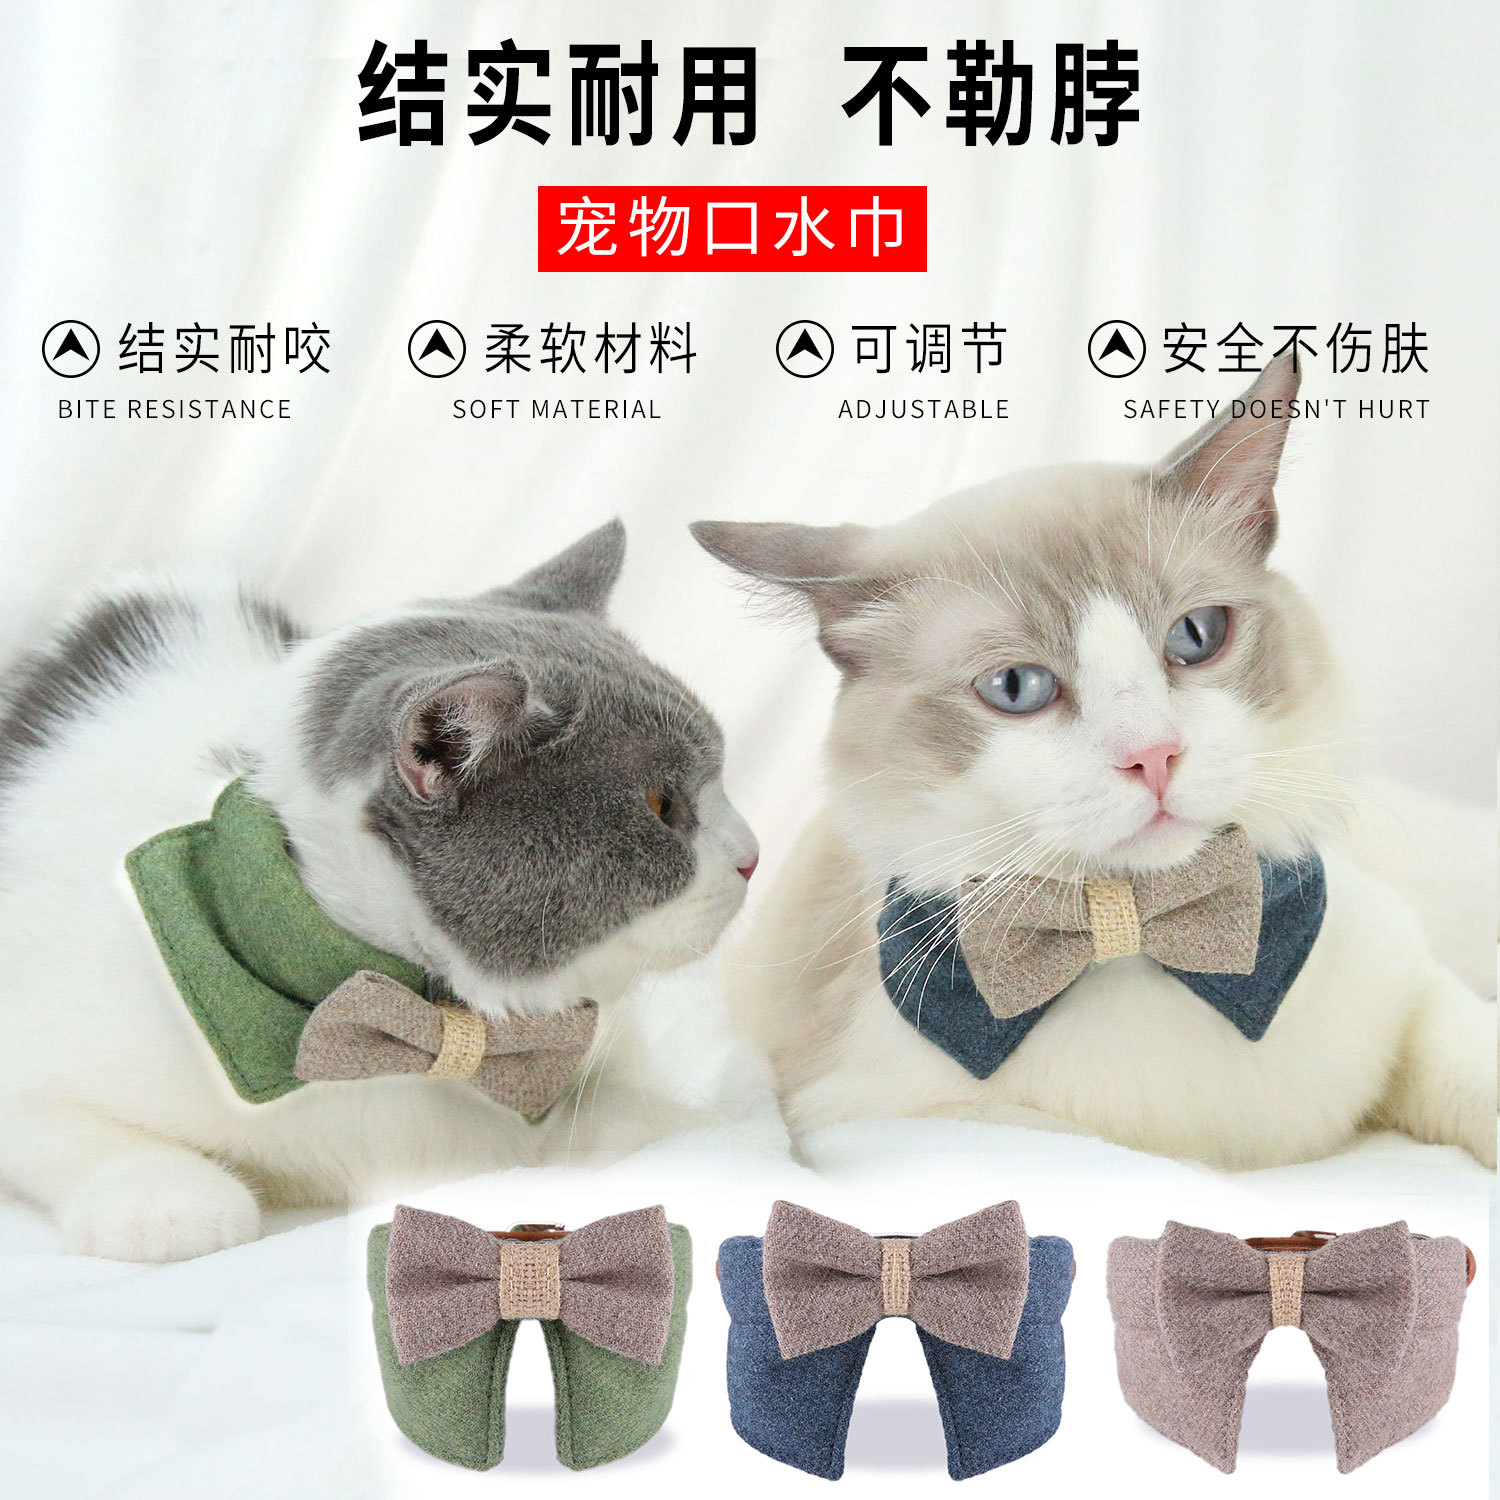 2020 Pet Triangular Scarf Neck Ring Hot Sales Large Bowtie Comfortable Felt Cloth Kitten Neck Ring Dog Collar